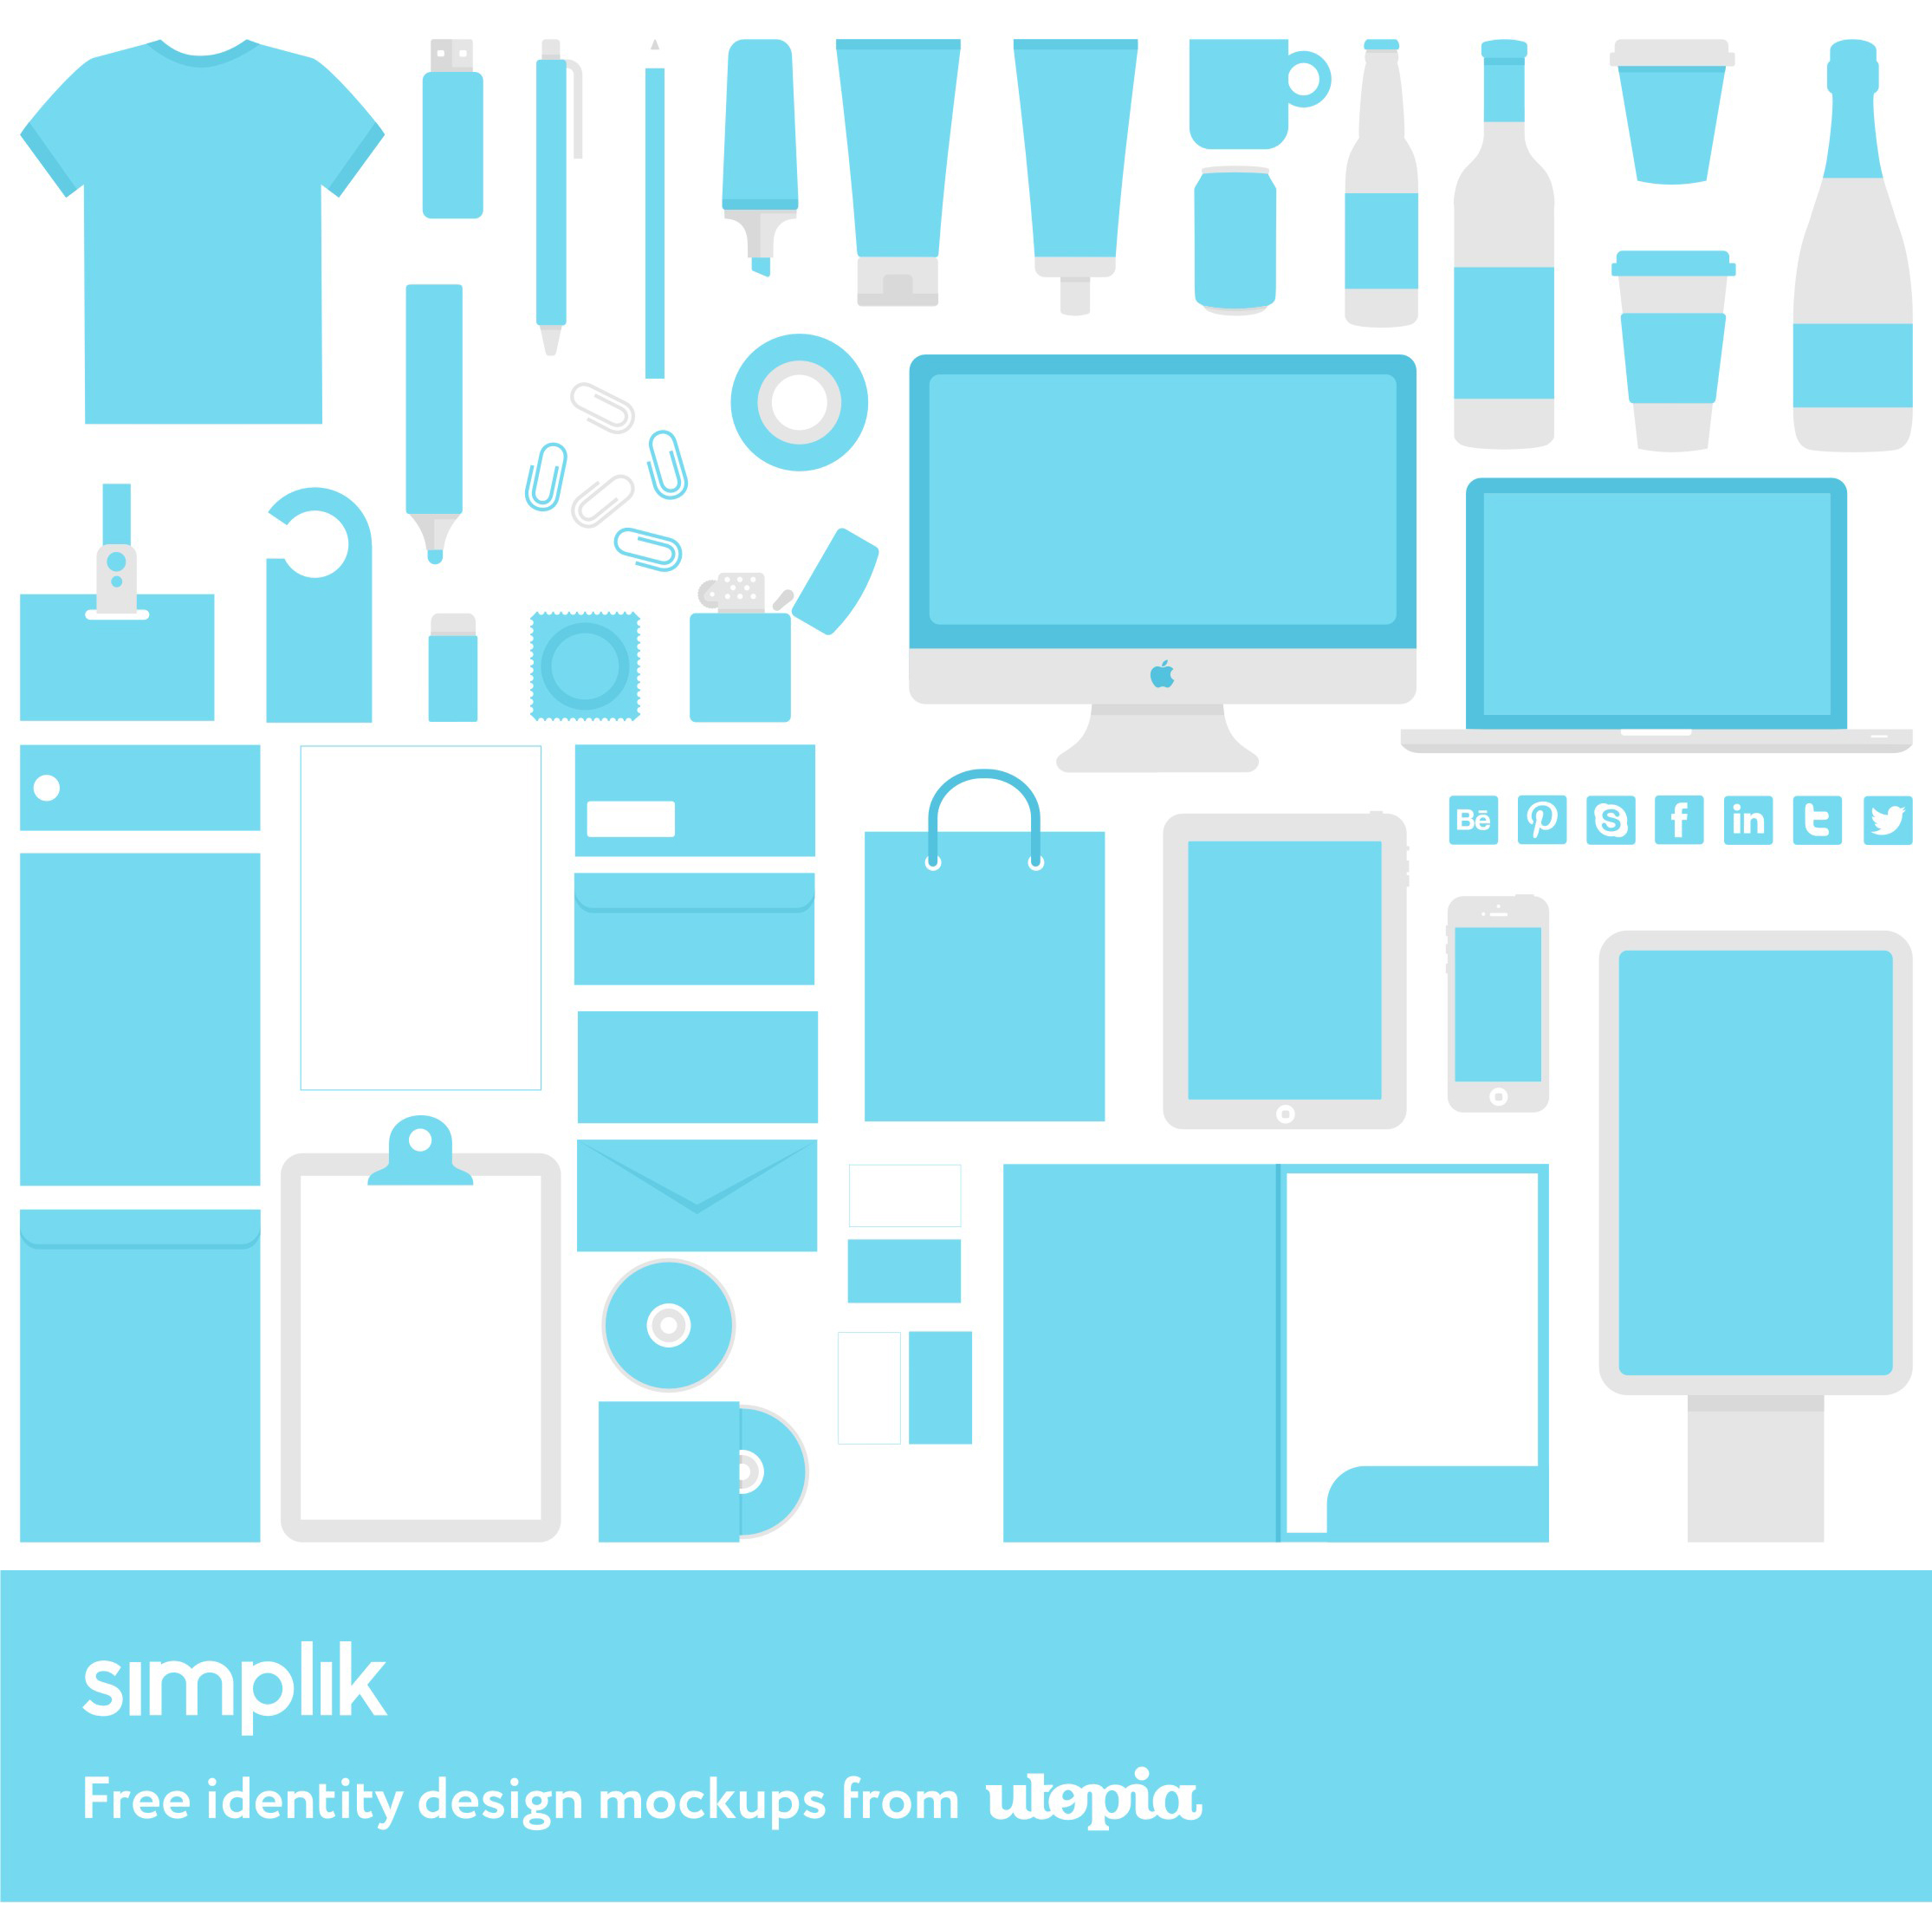 Simplik, full corporate identity design mockups freebie giveaway from Utopia branding agency